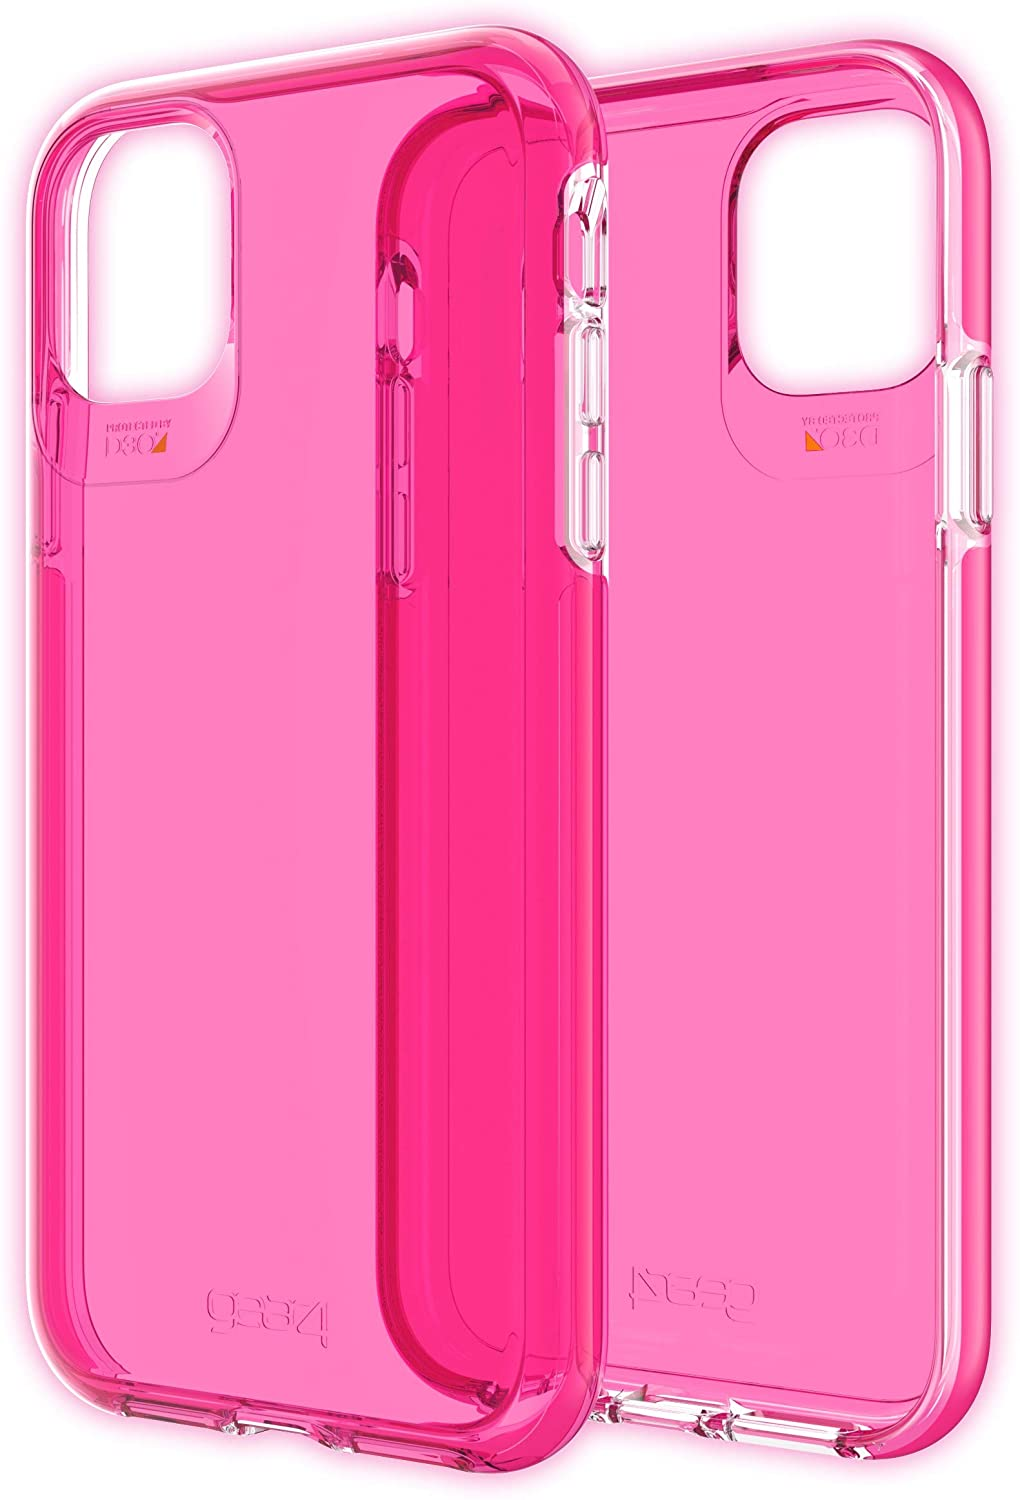 Gear 4 Crystal Palace Rugged Case iPhone 11 Pink